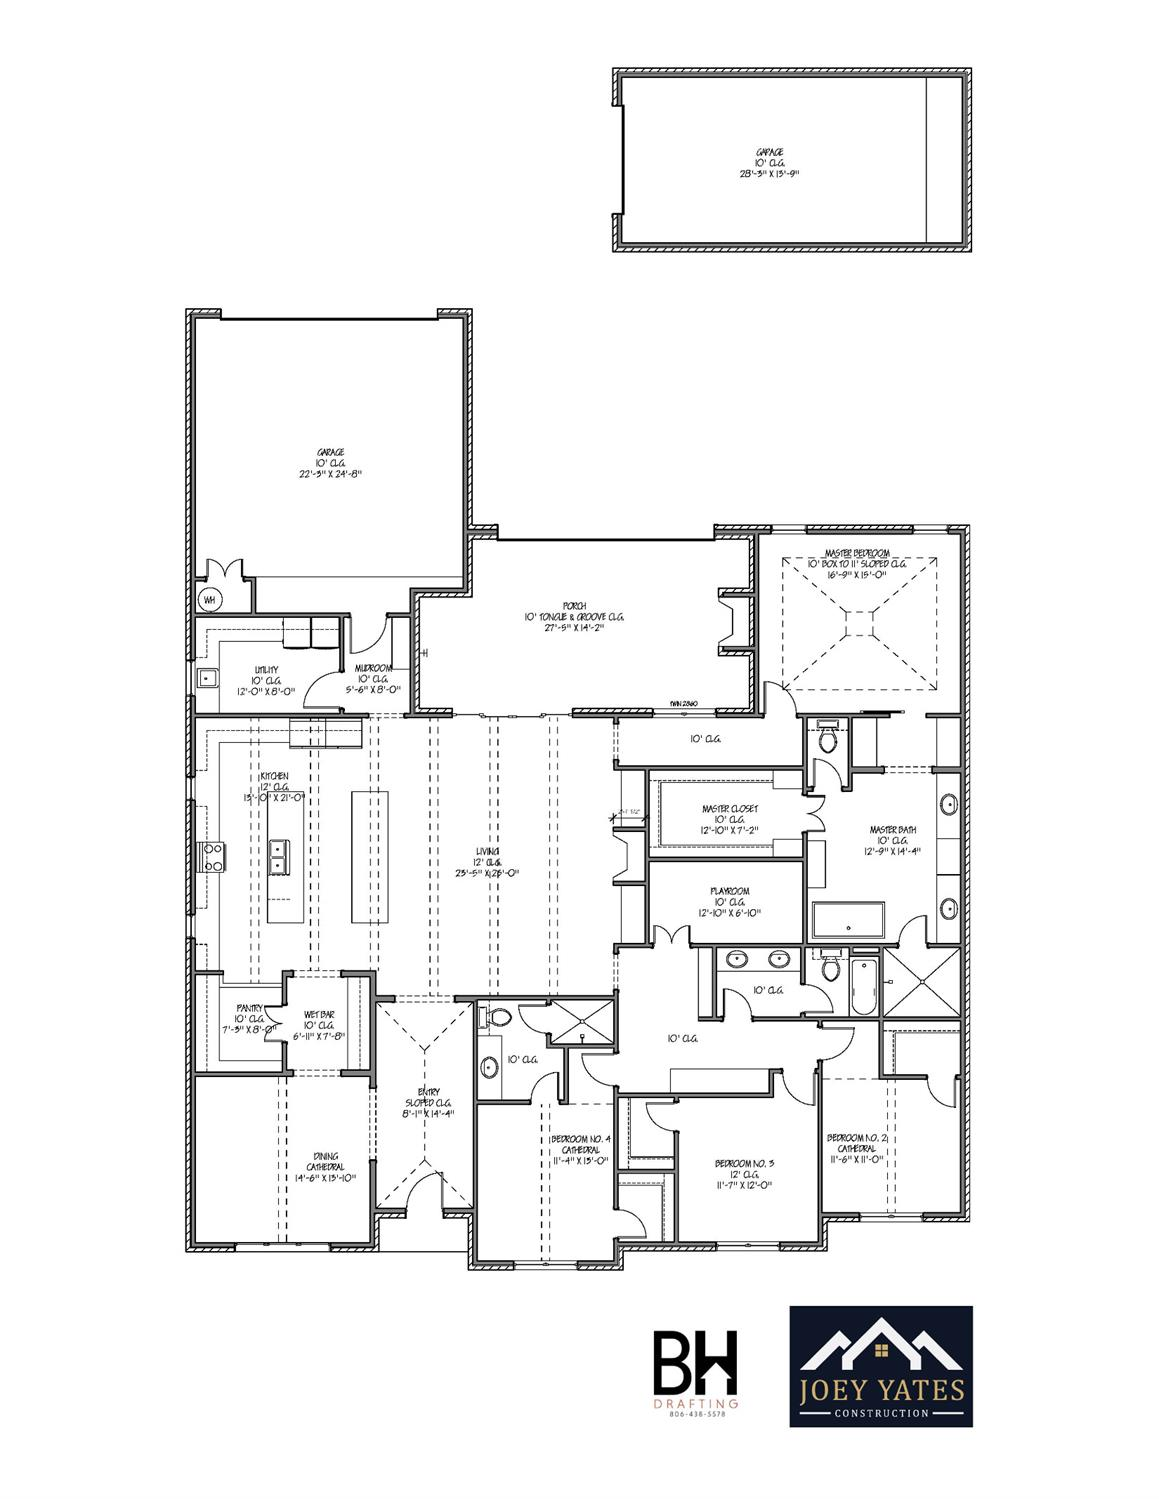 2021 Parade of Homes in Preston Manor by Joey Yates Construction.  This 4 bed/3bath home feature a huge enclosed patio with glass overhead doors, a playroom and is located right across from the new park and community pool.